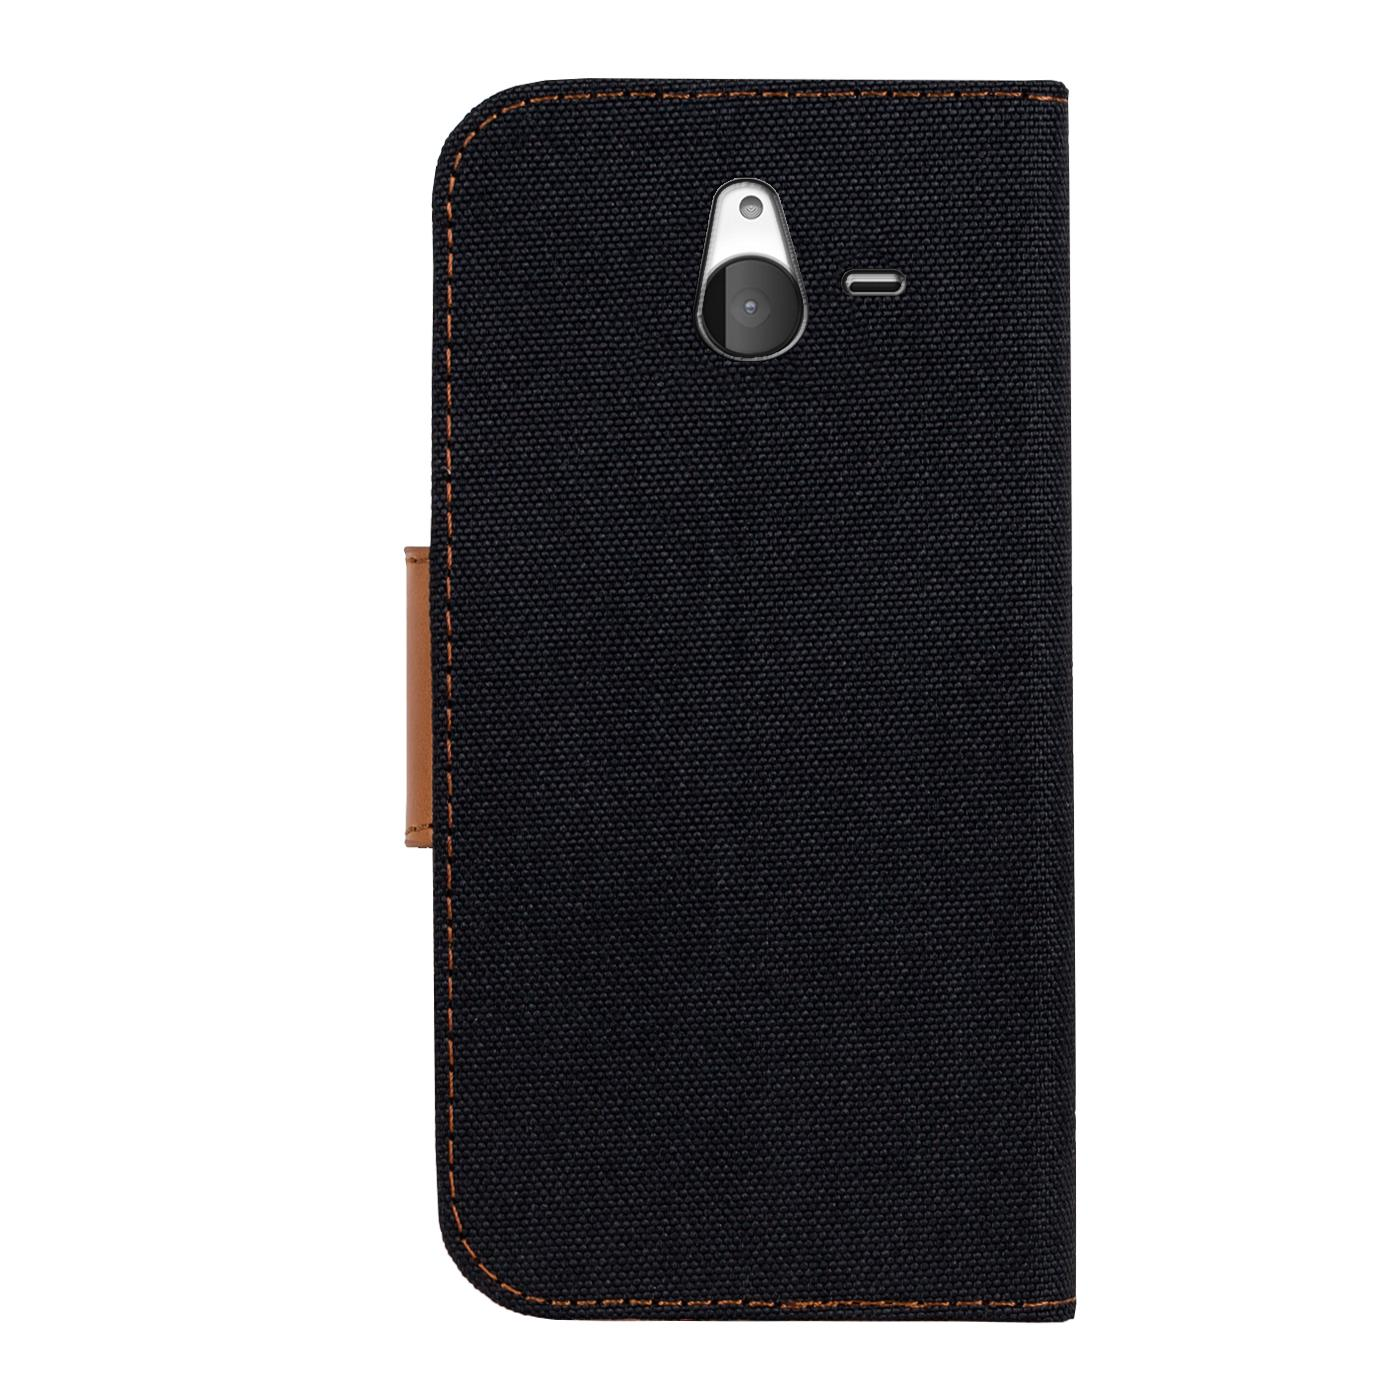 Microsoft-Lumia-640-XL-Phone-PU-Leather-Magnetic-Flip-Case-Wallet-Denim-Cover thumbnail 6